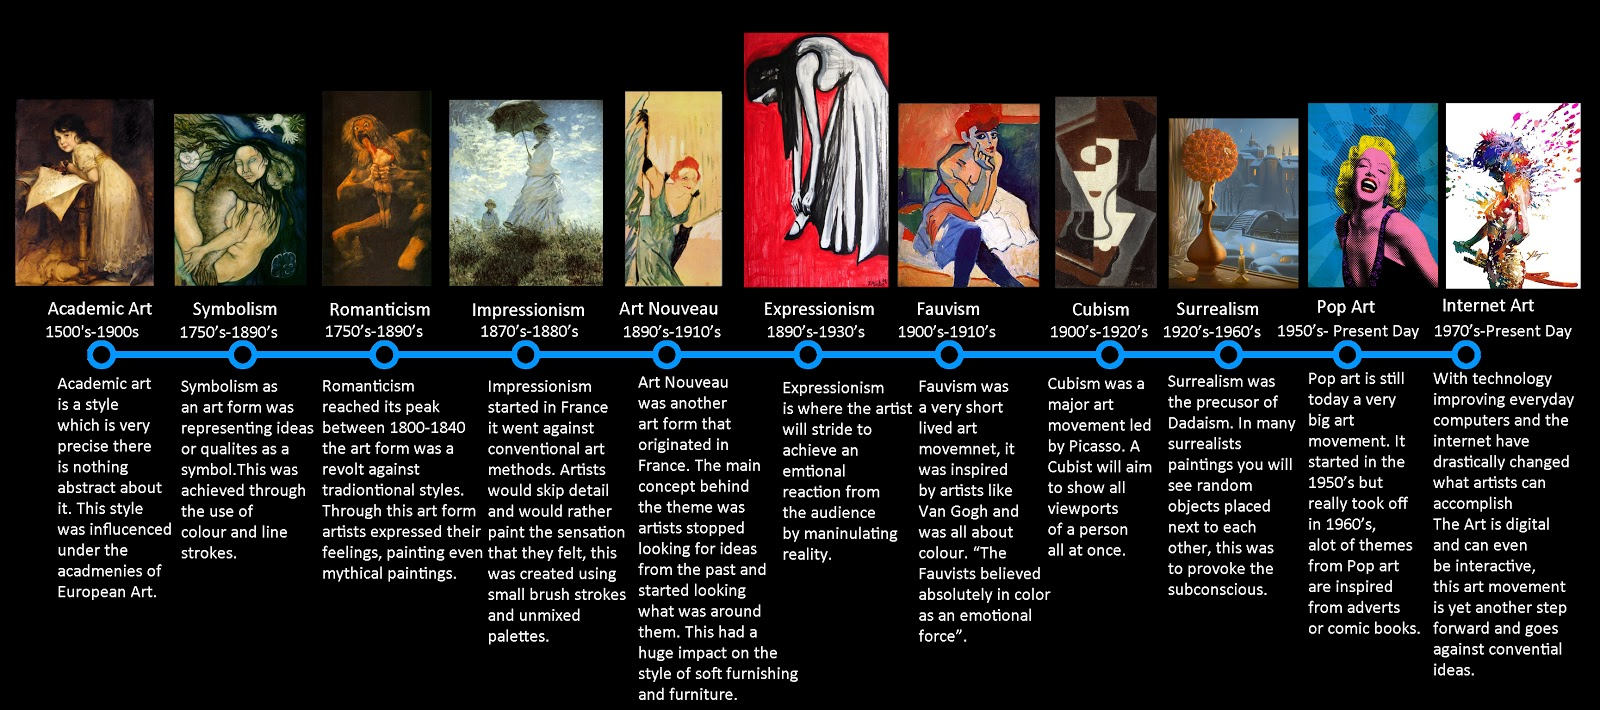 Mcnallys art classes art 2 art history and assignments this timeline generally outlines our study in art ii altavistaventures Gallery